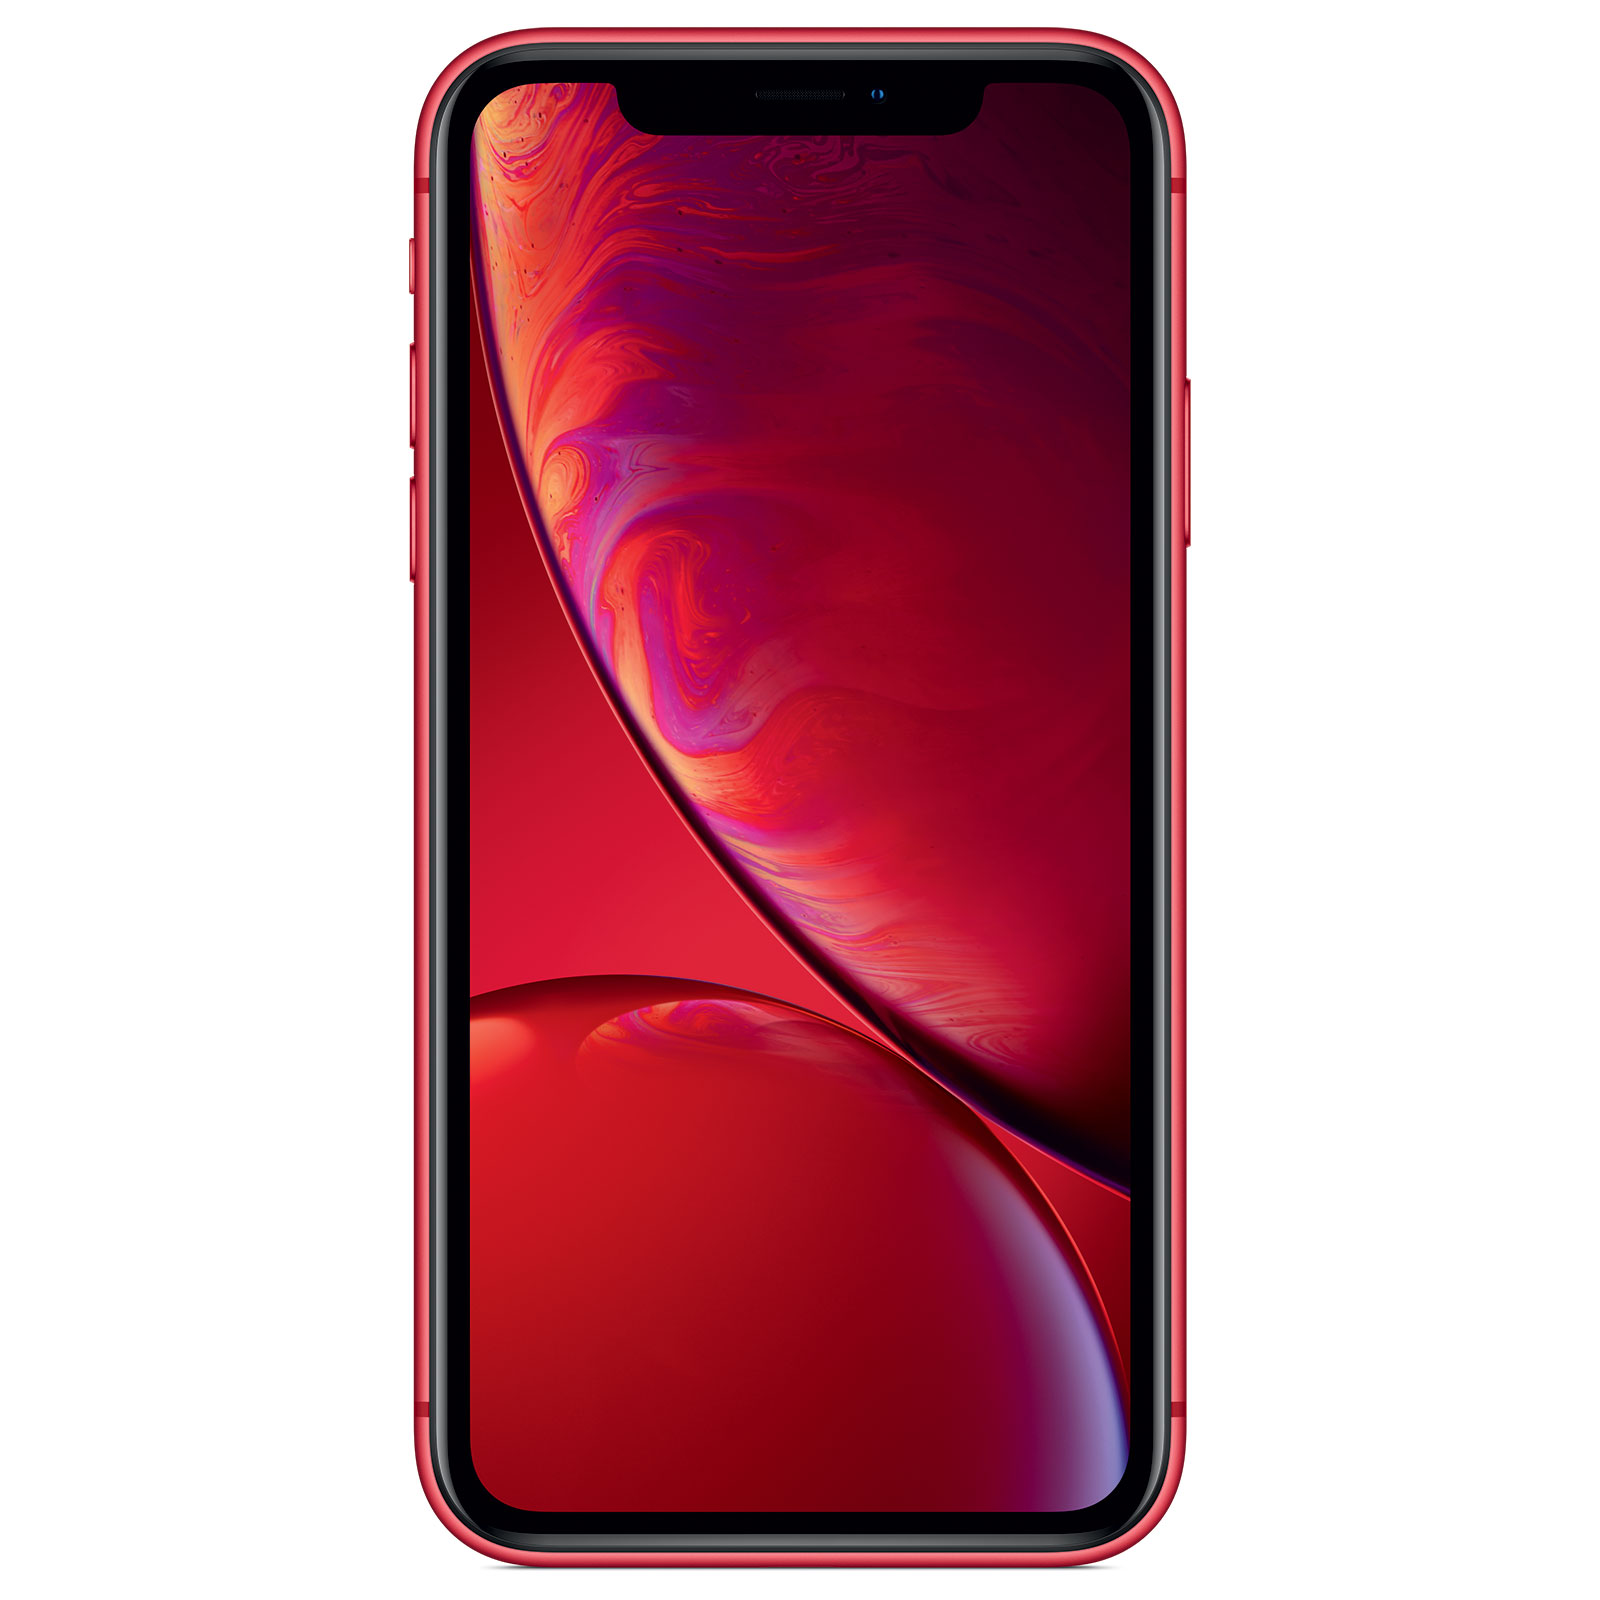 "Mobile & smartphone Apple iPhone XR 128 Go (PRODUCT)RED Smartphone 4G-LTE Advanced IP67 Dual SIM - Apple A12 Bionic Hexa-Core - RAM 3 Go - Ecran 6.1"" 828 x 1792 - 128 Go - NFC/Bluetooth 5.0 - iOS 12"